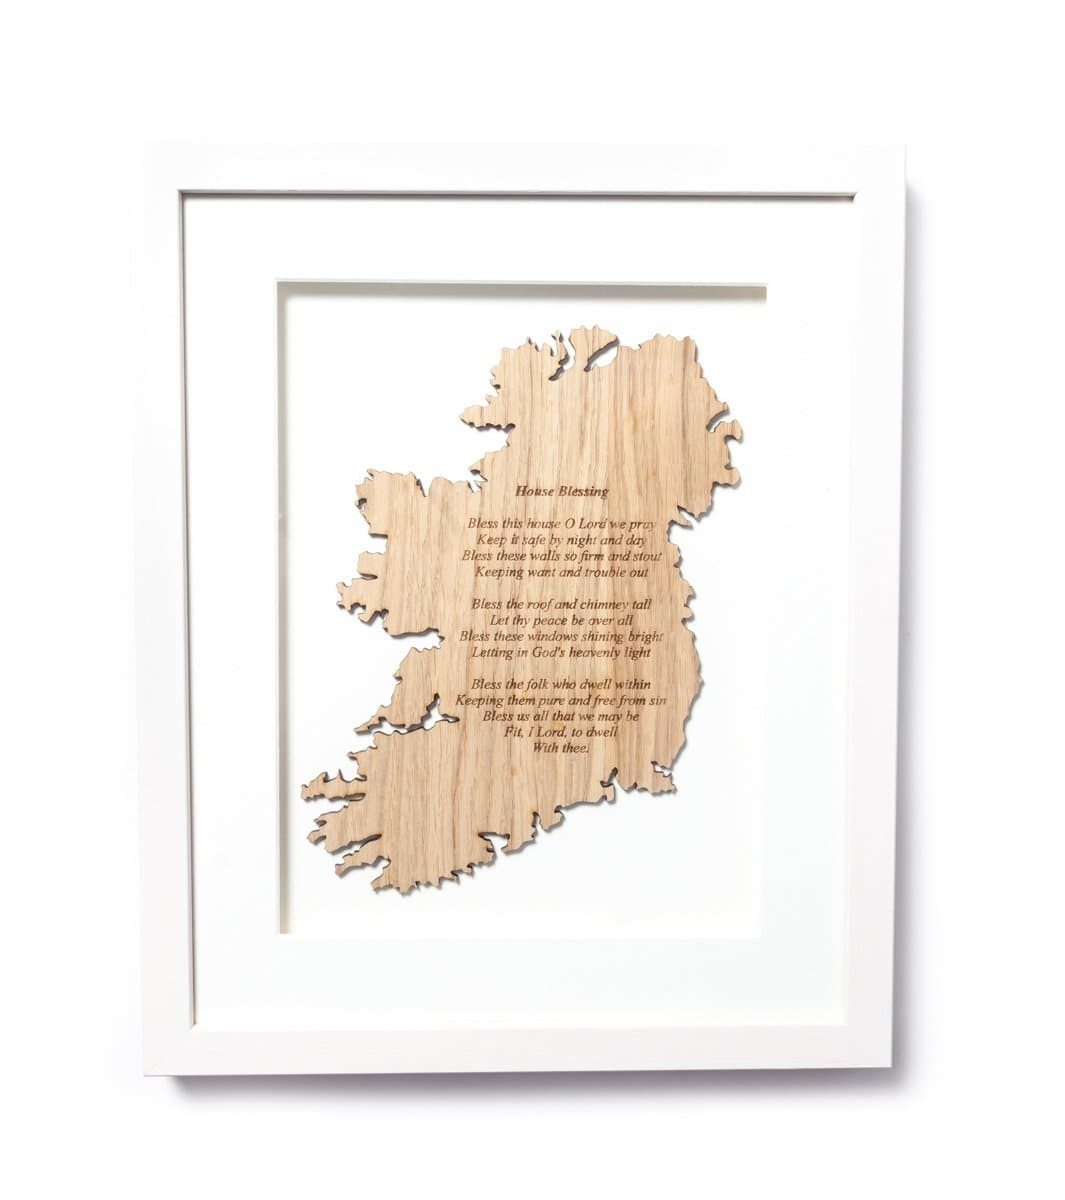 Irish House Blessing Framed Wall Decor Made in Ireland Bless This House Irish Blessing Unique Gift Crafted in Co. Meath